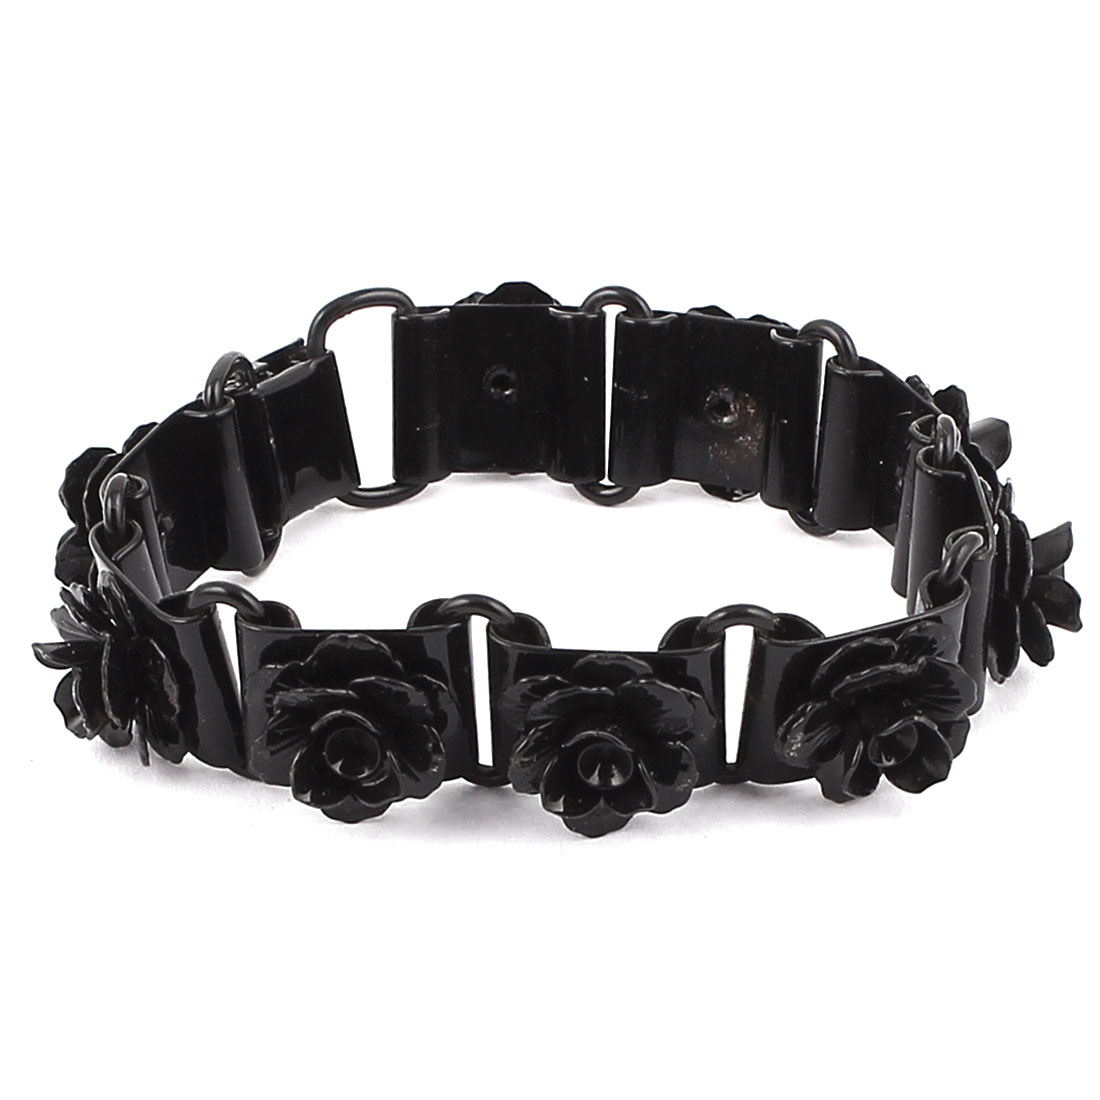 Unisex Black Metal Folded Over Clasp Closure Flower Decoration Bracelet Bangle for Lady Women Men